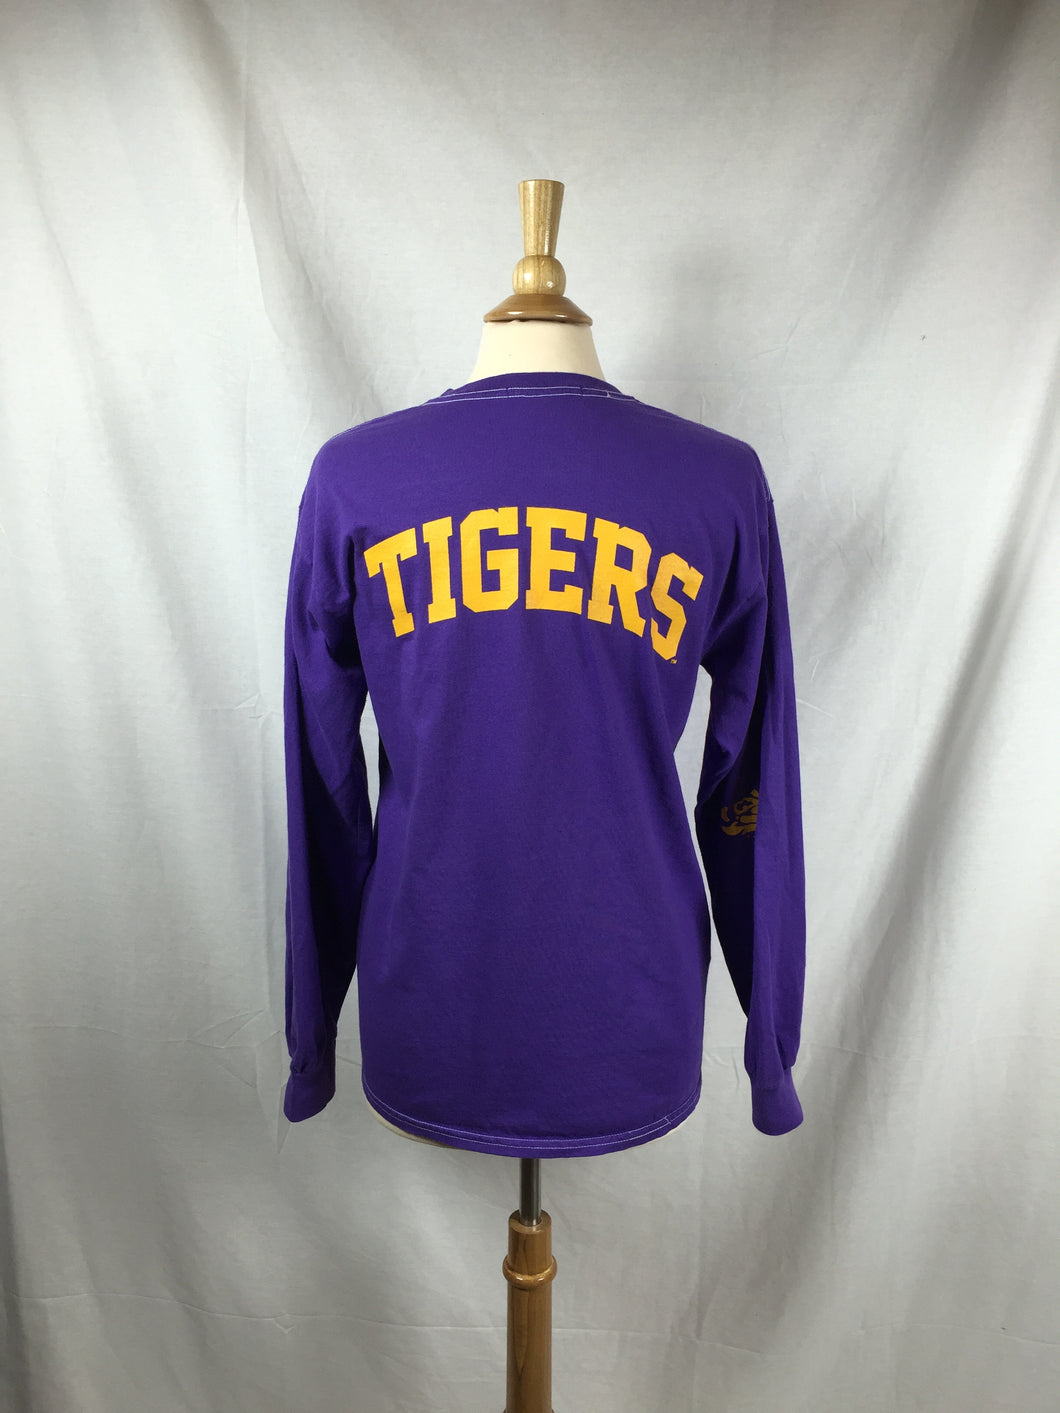 TIGERS Purple L/S Tee